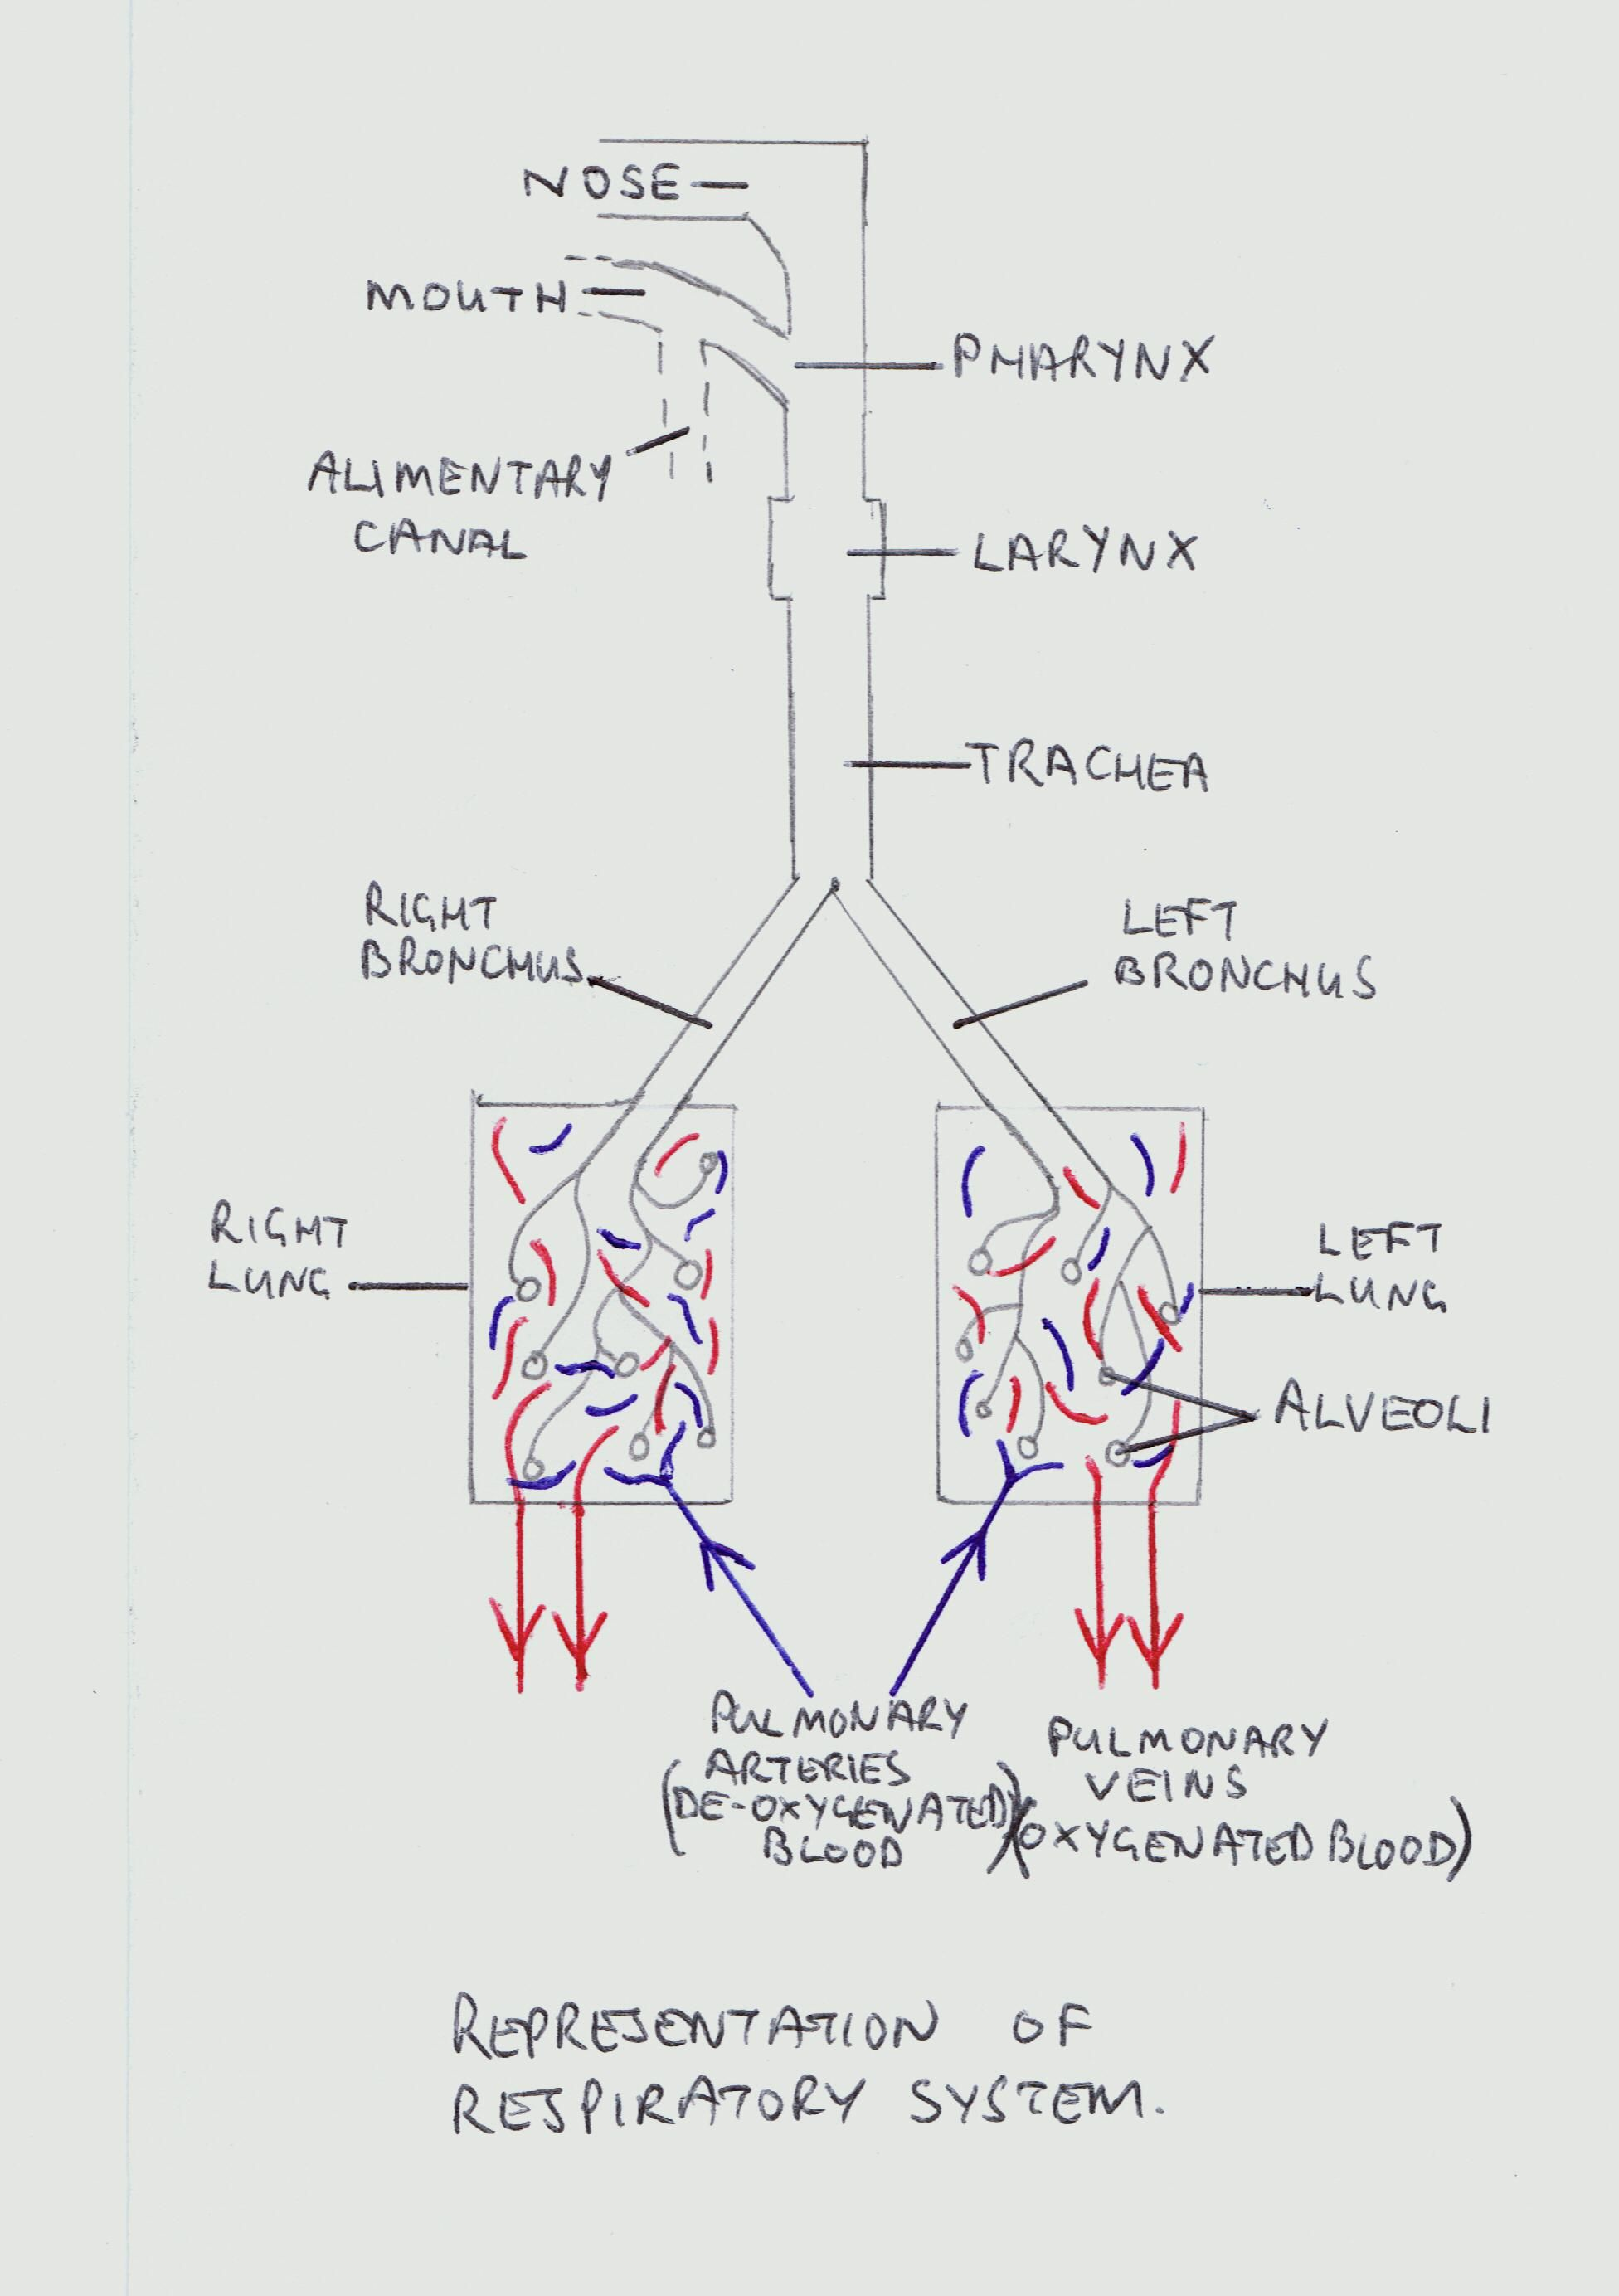 Lungs - The Respiratory System | Respiratory system, Lungs and ...